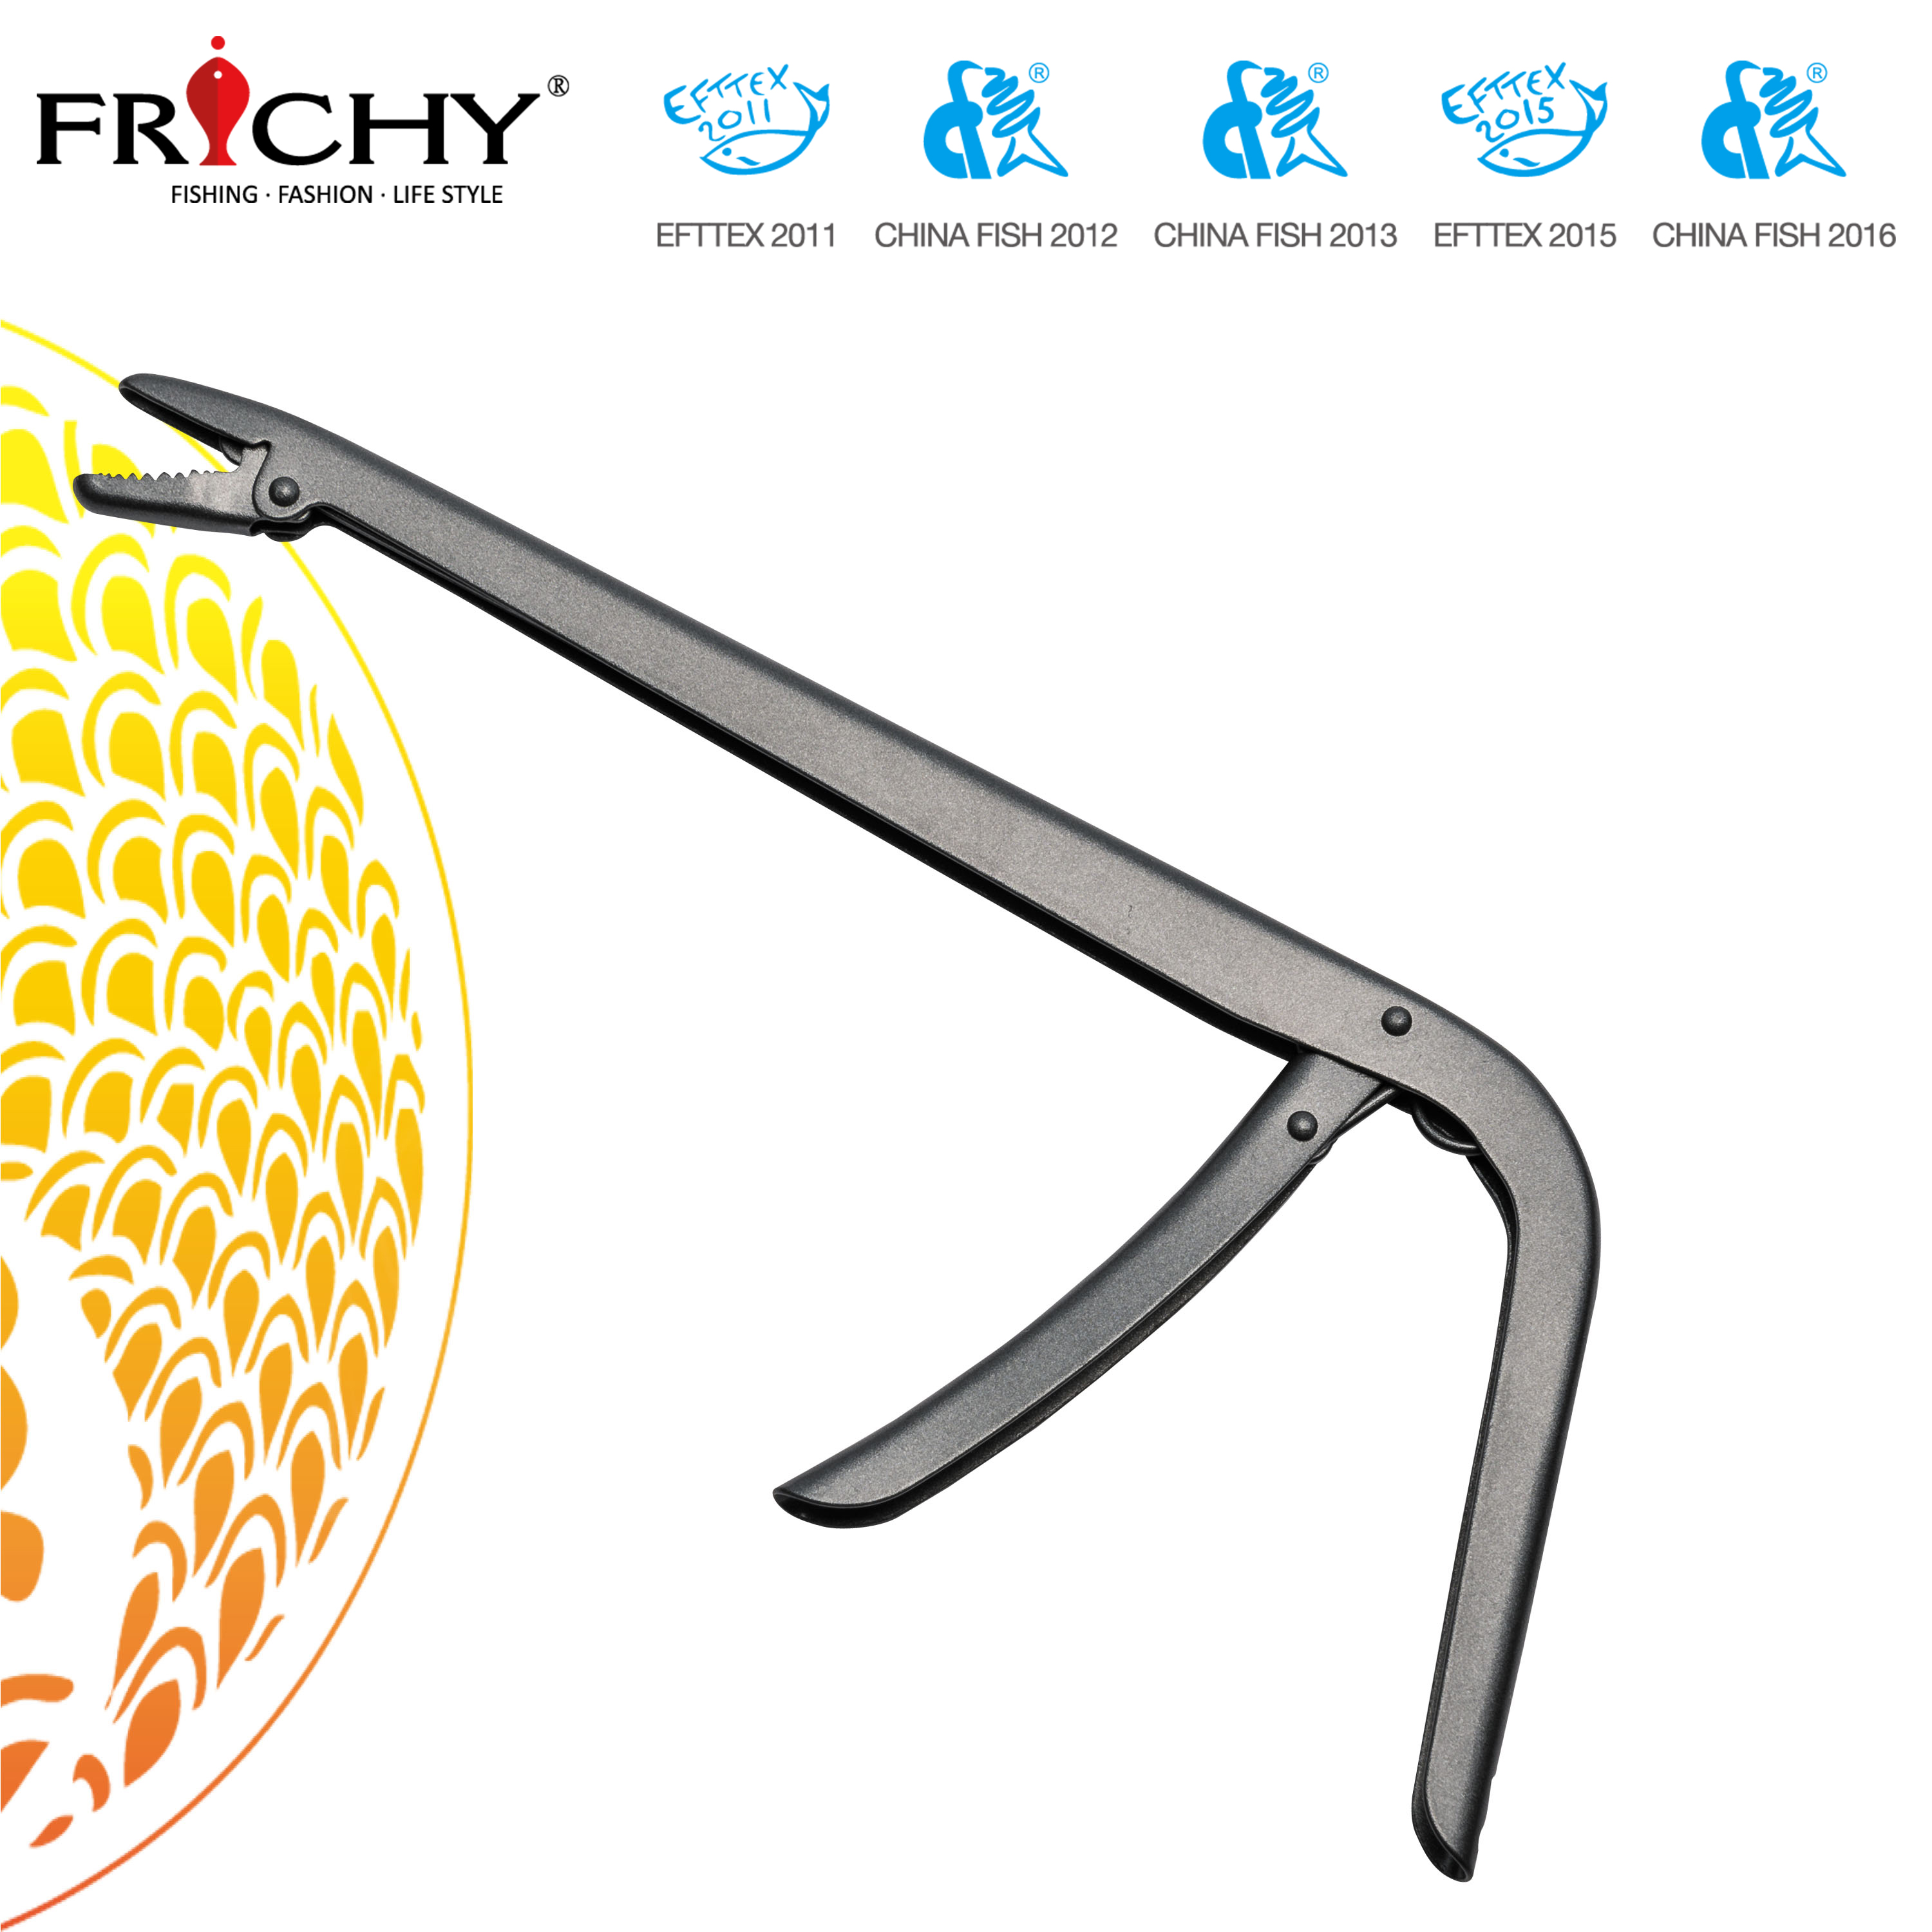 X61gm fishing accessory fishing hook remover tools buy for Fish hook removal tool